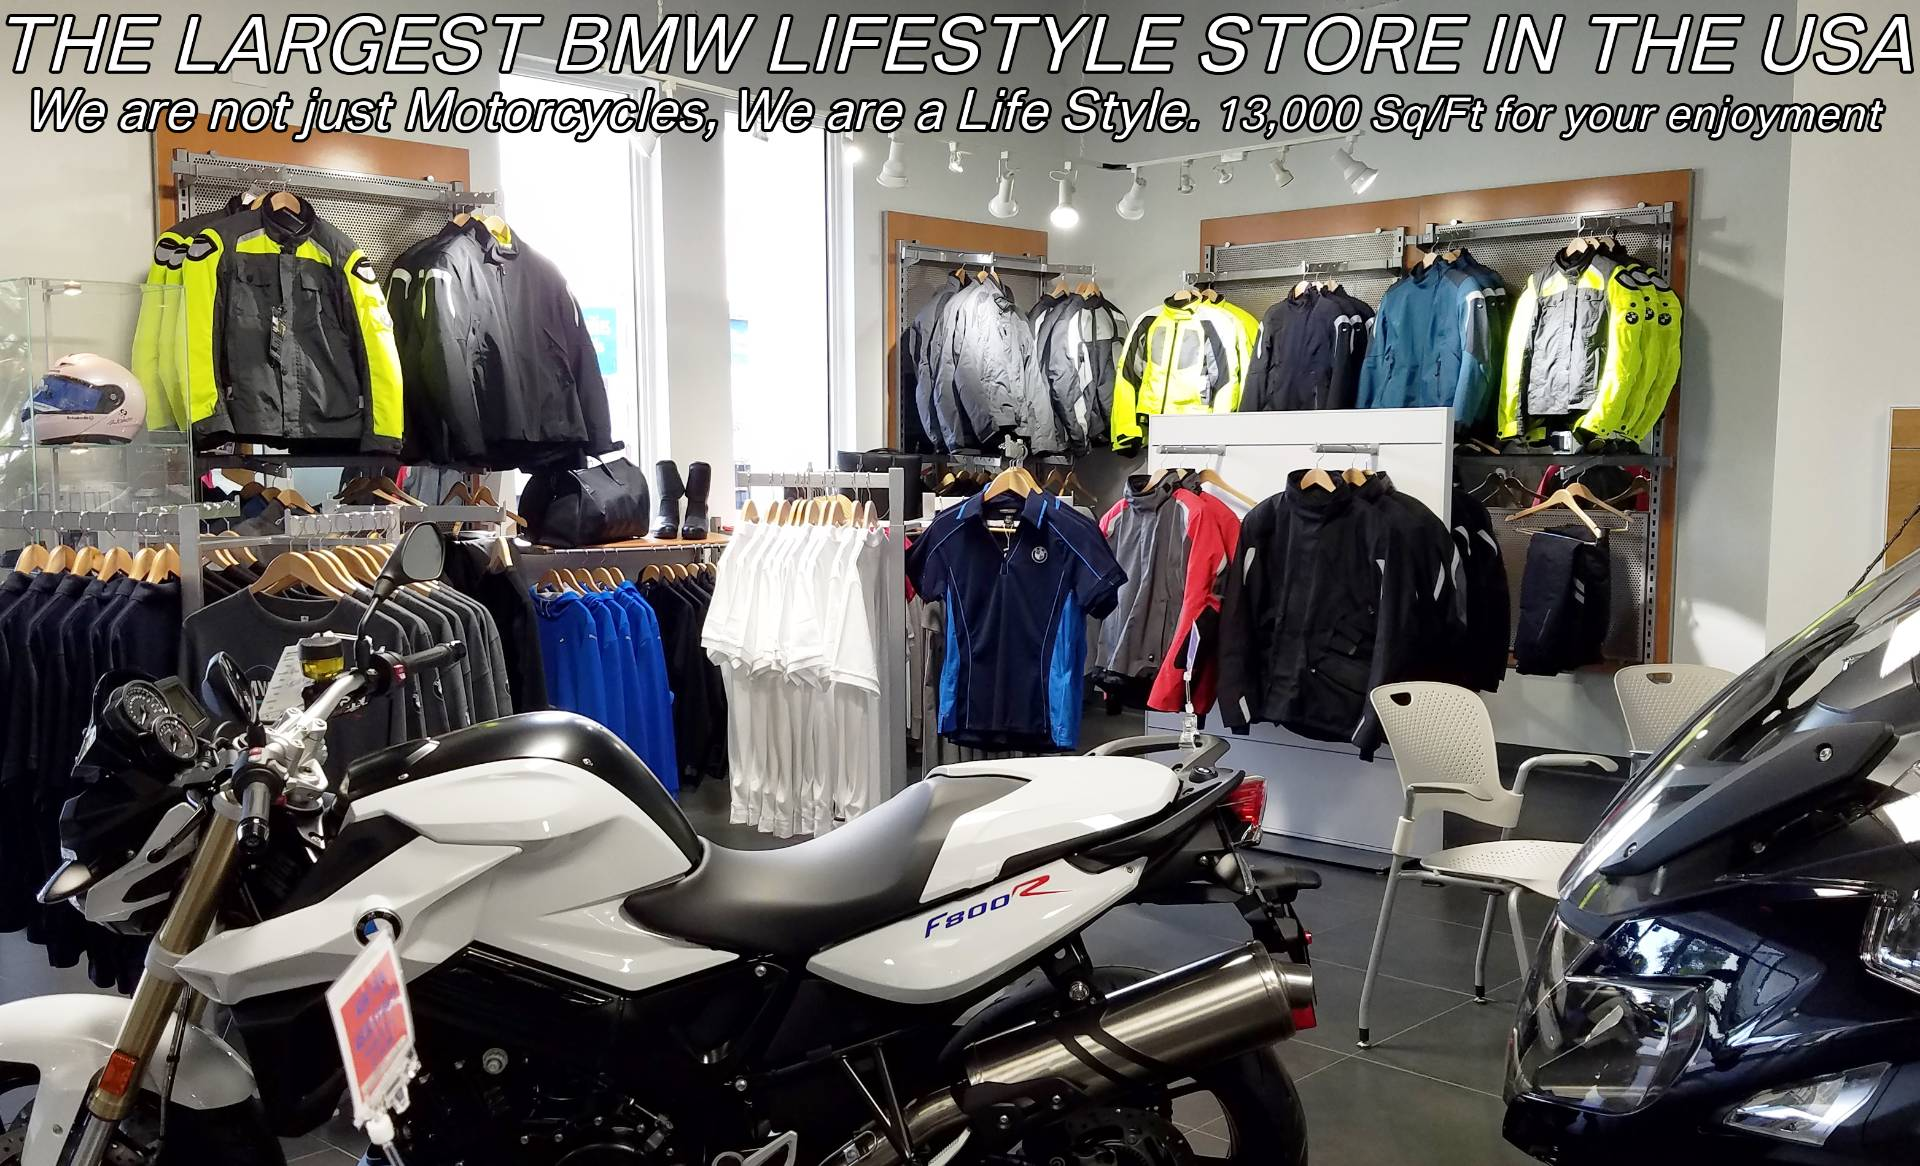 New 2019 BMW G 310 GS for sale, BMW G 310GS for sale, BMW Motorcycle GS, new BMW GS, Spirit of GS, BMW Motorcycles of Miami, Motorcycles of Miami, Motorcycles Miami, New Motorcycles, Used Motorcycles, pre-owned. #BMWMotorcyclesOfMiami #MotorcyclesOfMiami. - Photo 23